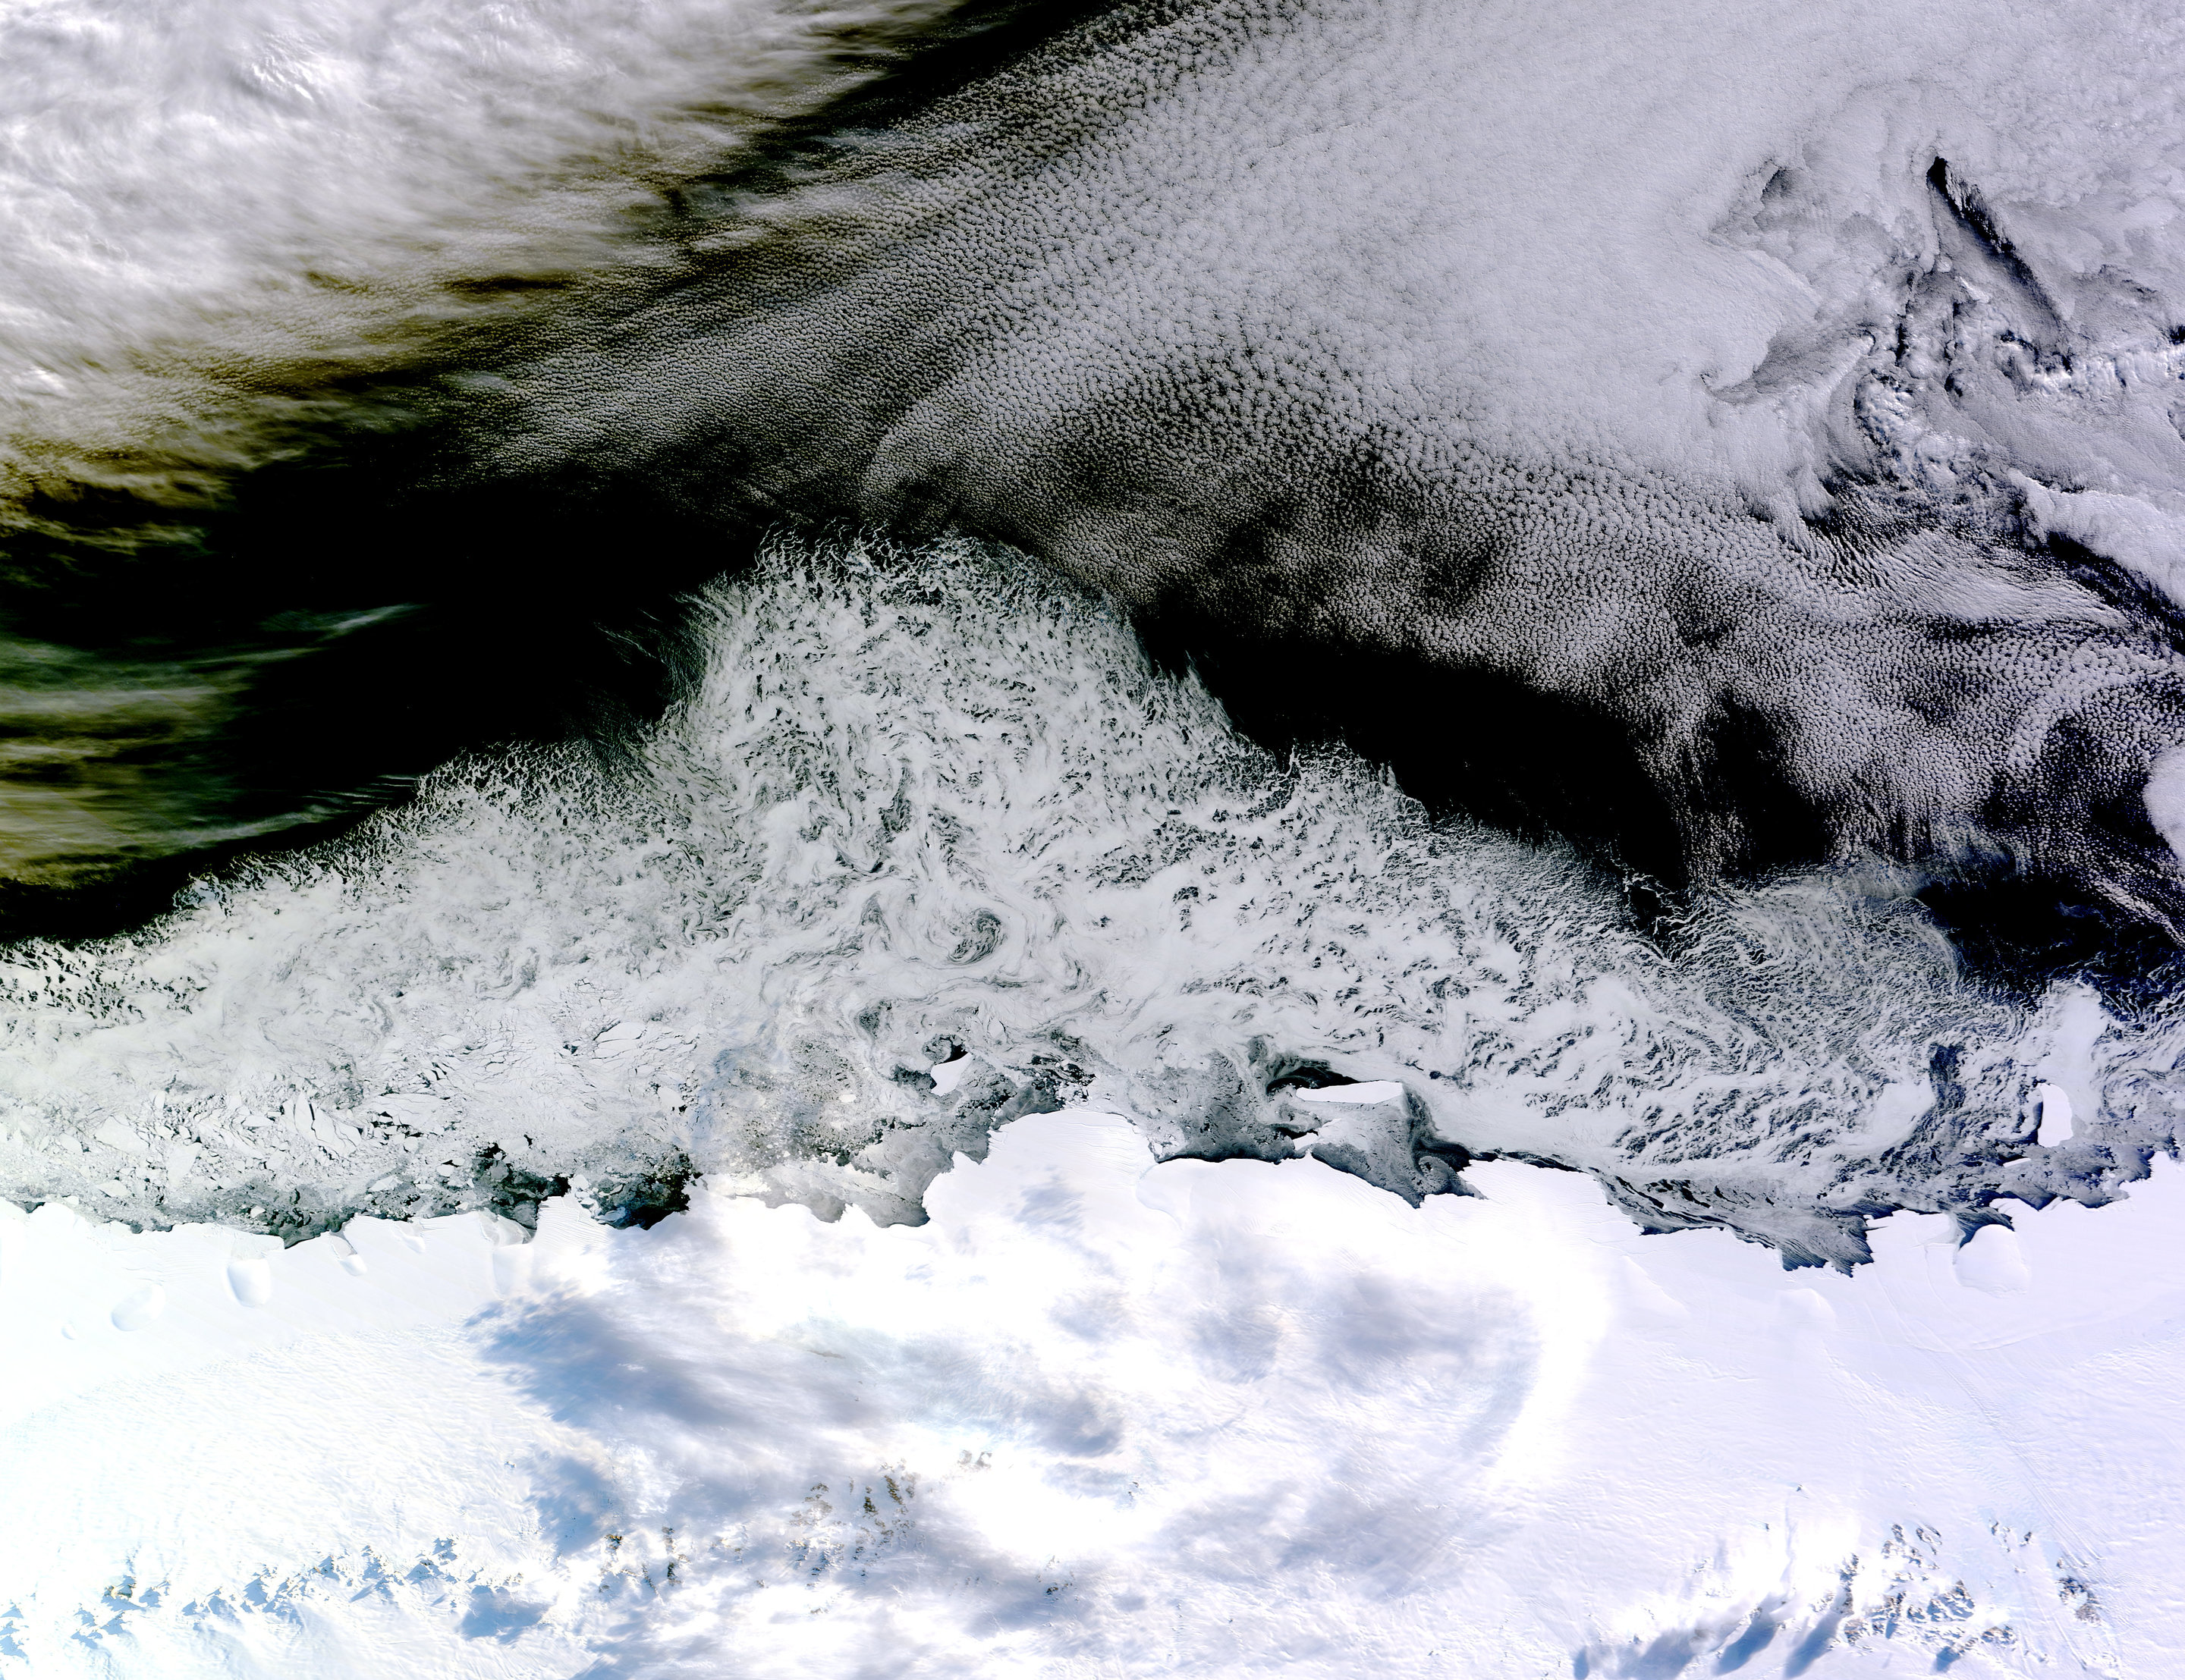 Satellite imagery is revolutionizing the world. But should we always trust what we see?